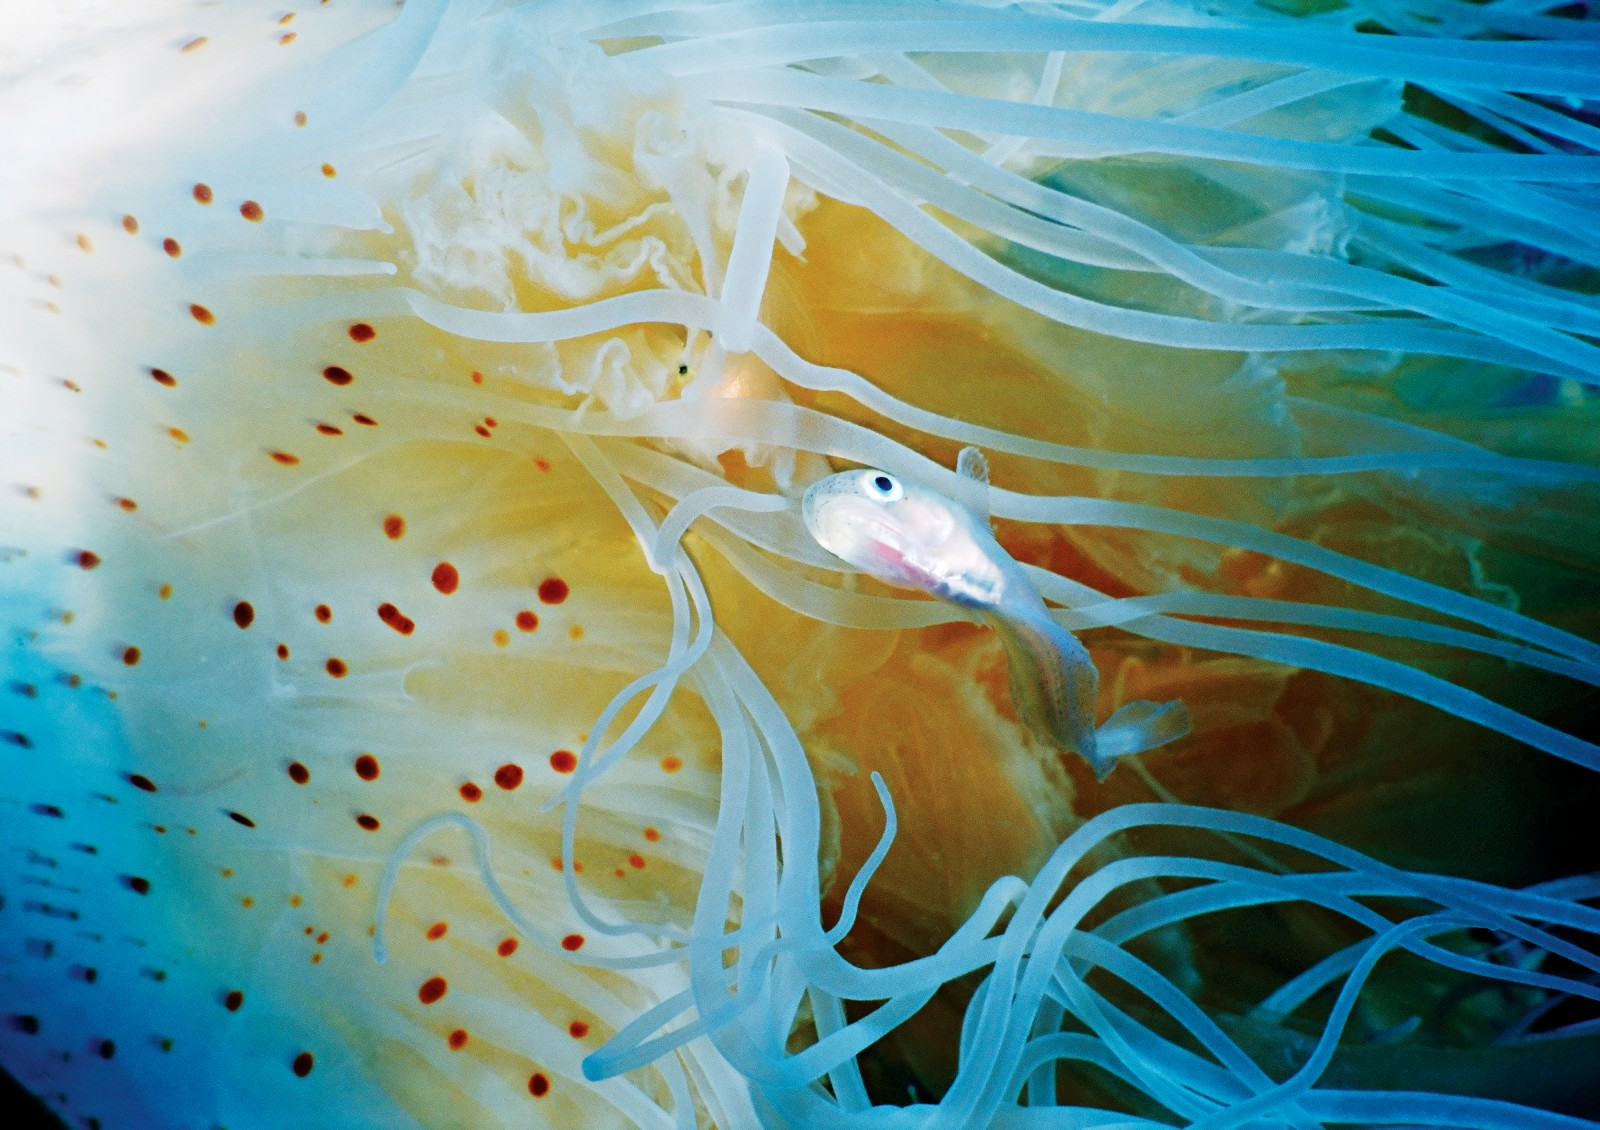 A larval fish tempts fate by swimming through Desmonema gaudichaudi's trailing tentacles—moments later the fish is sashimi. While not mobile enough to pursue prey, jellyfish are effective killers at close range. A loose network of nerves that link to a circular nerve ring is ever alert for stimuli. Contact with the prey triggers nematocysts— located in specialised cells called cnidocytes—to pierce the skin and inject venom.